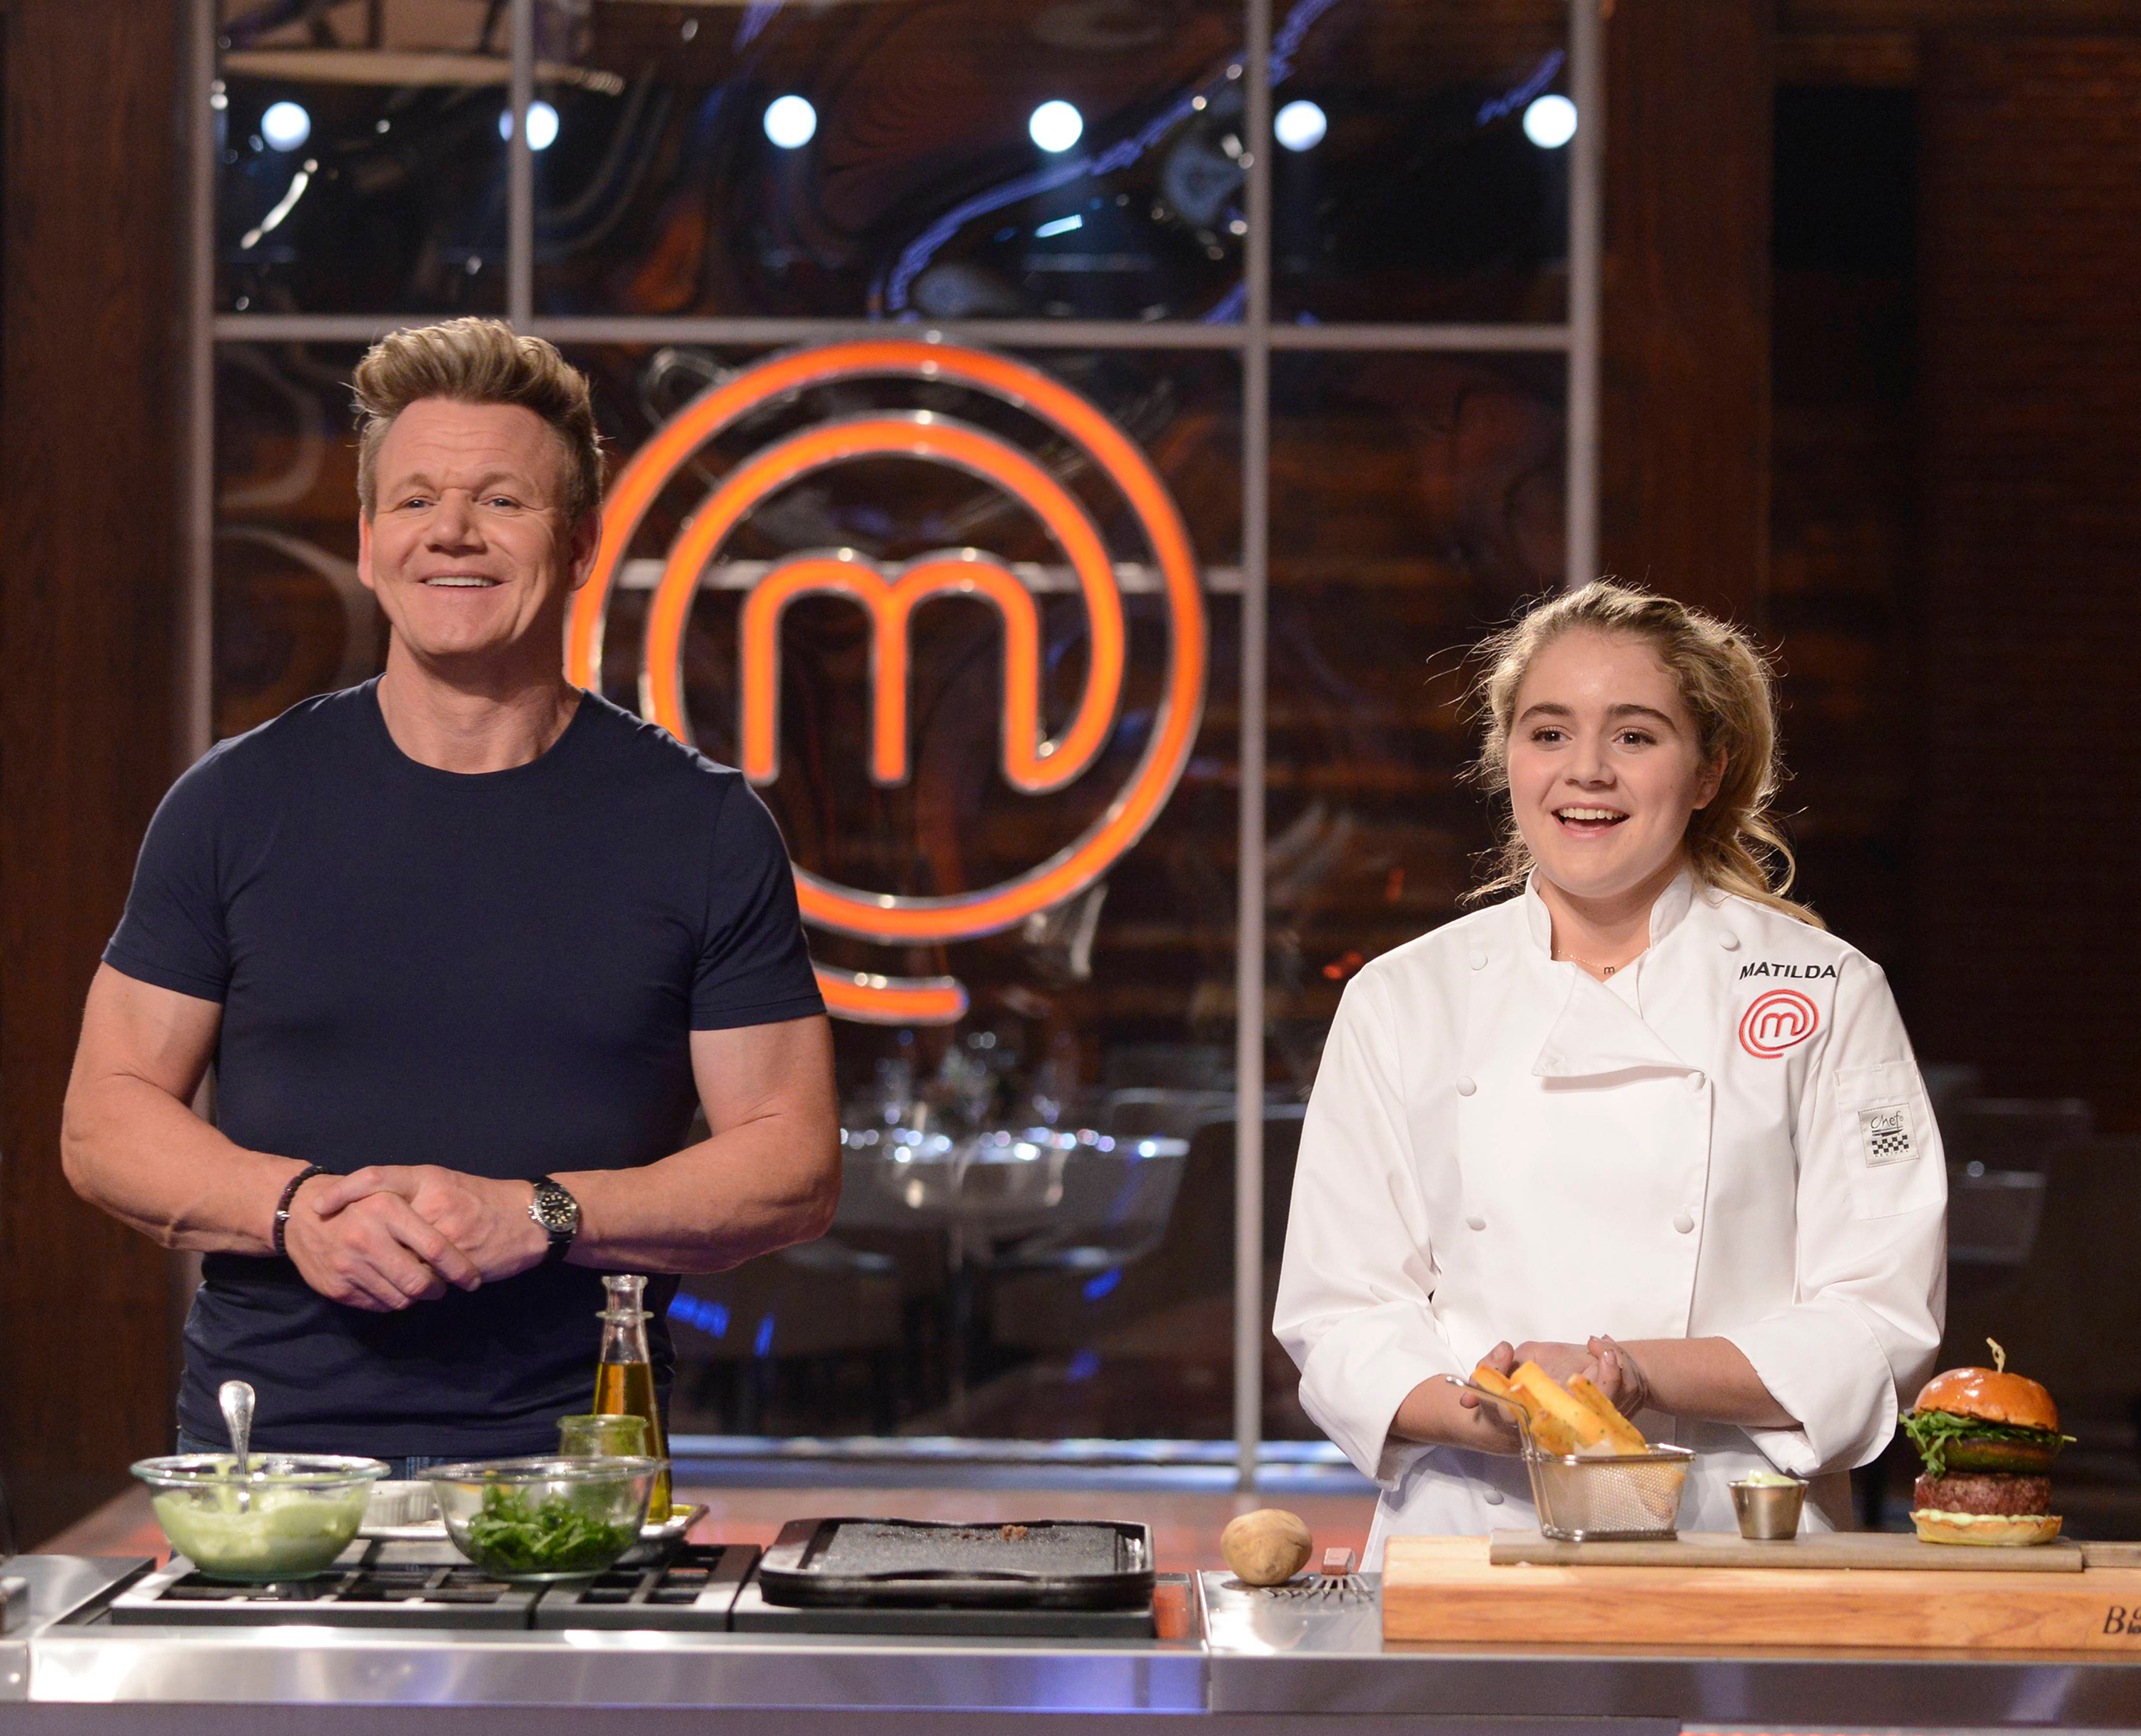 Gordon Ramsay's daughter Matilda could appear on Strictly Come Dancing very soon